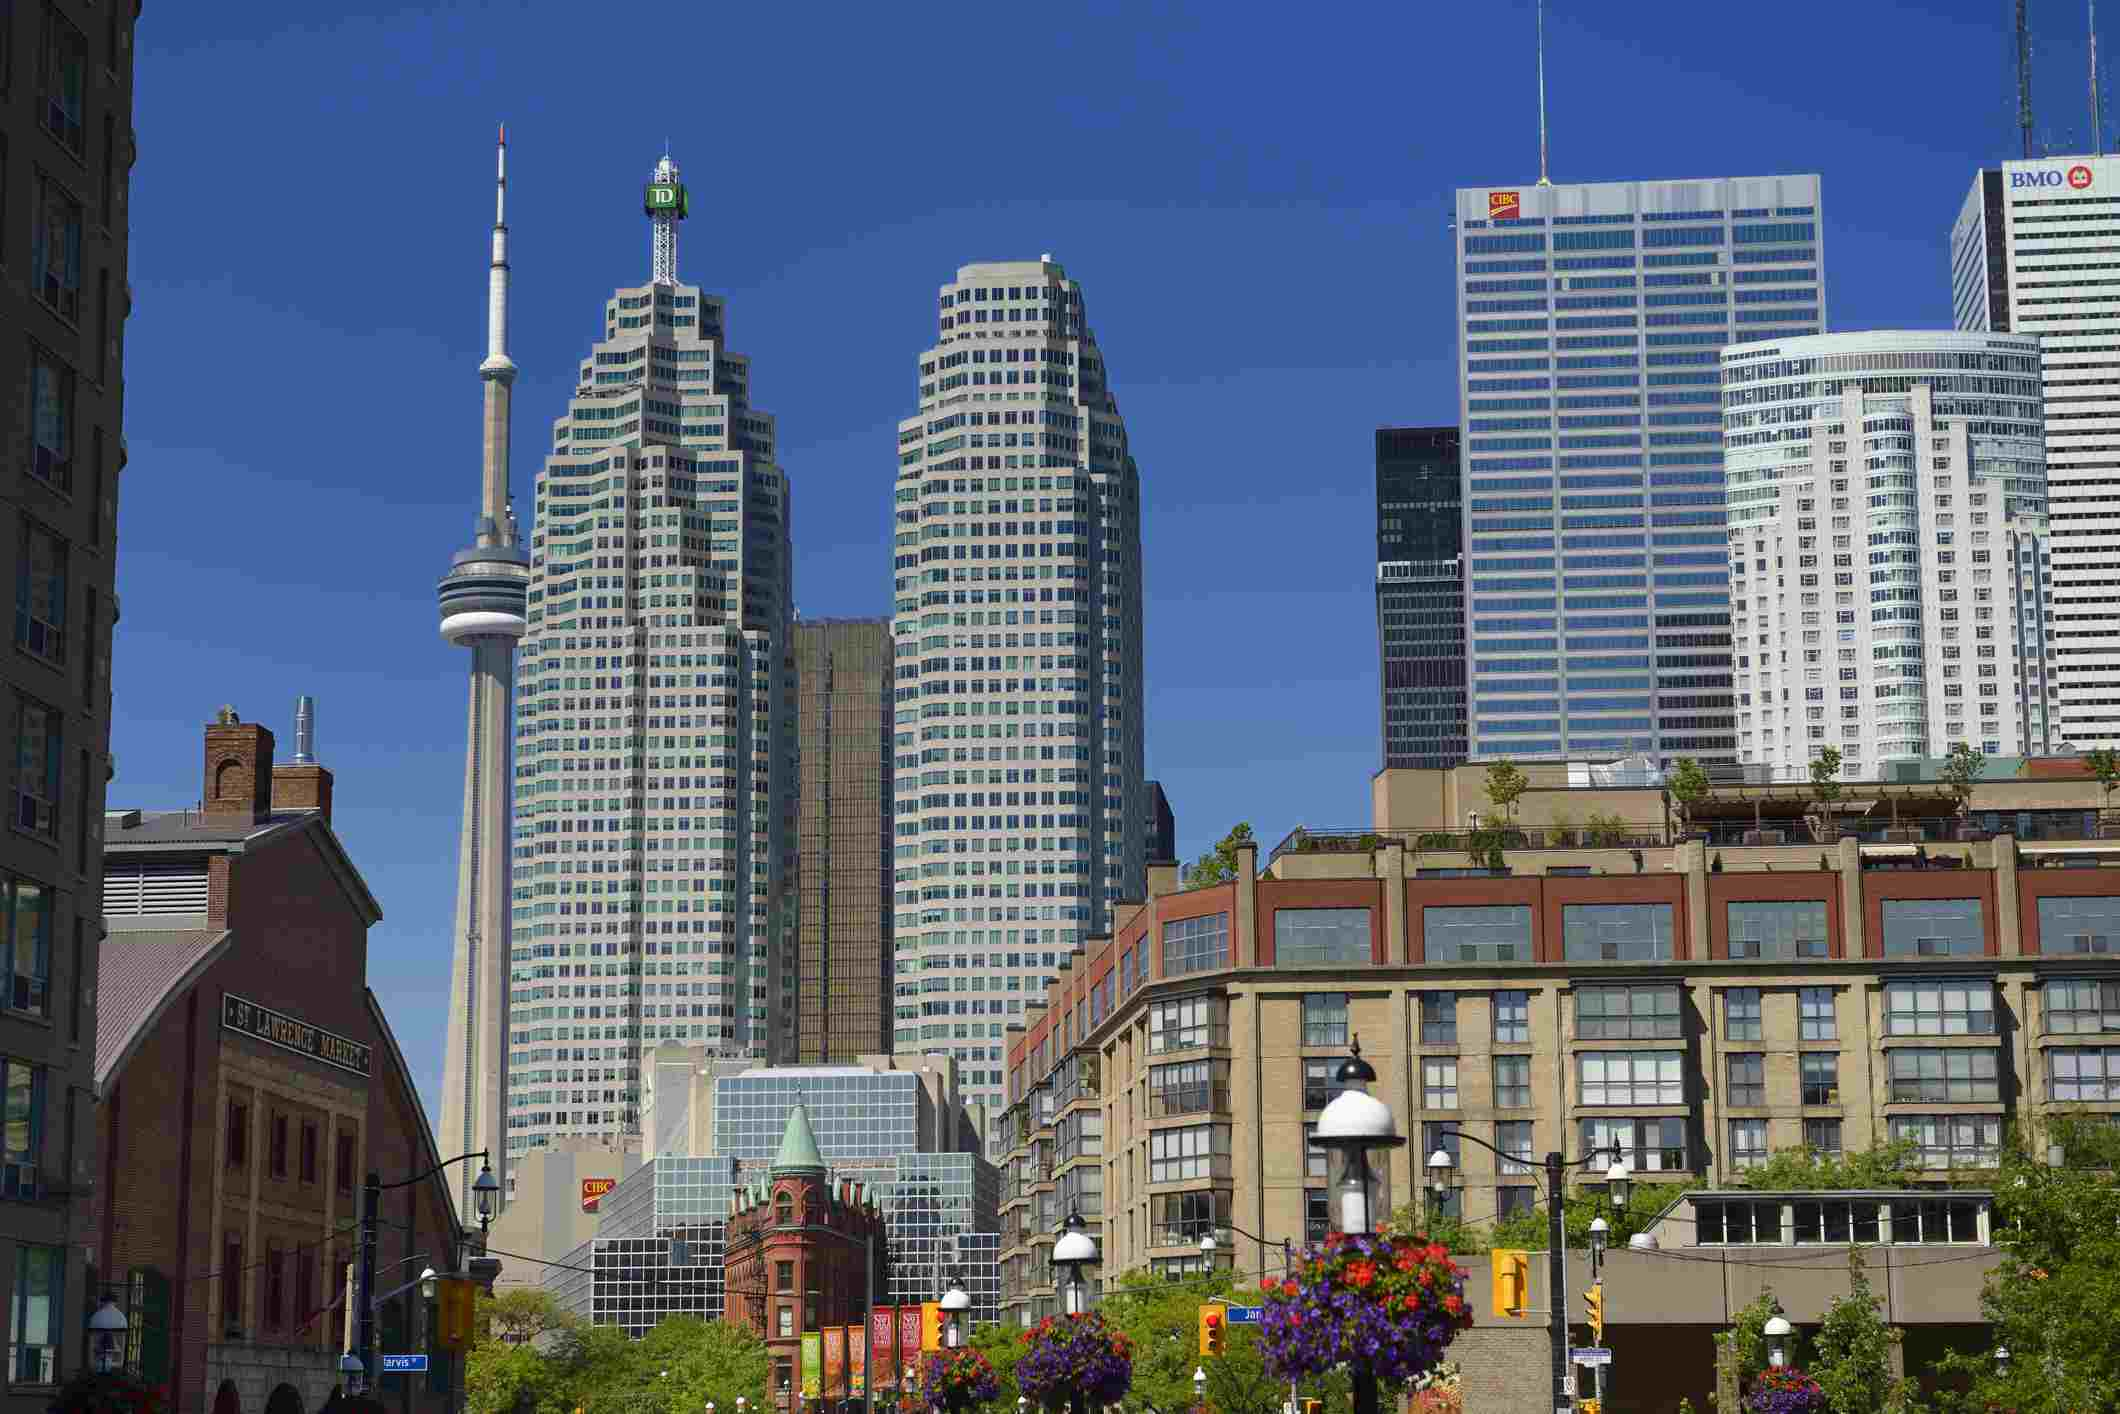 St Lawrence Market and Gooderham Flatiron building with financial district bank towers